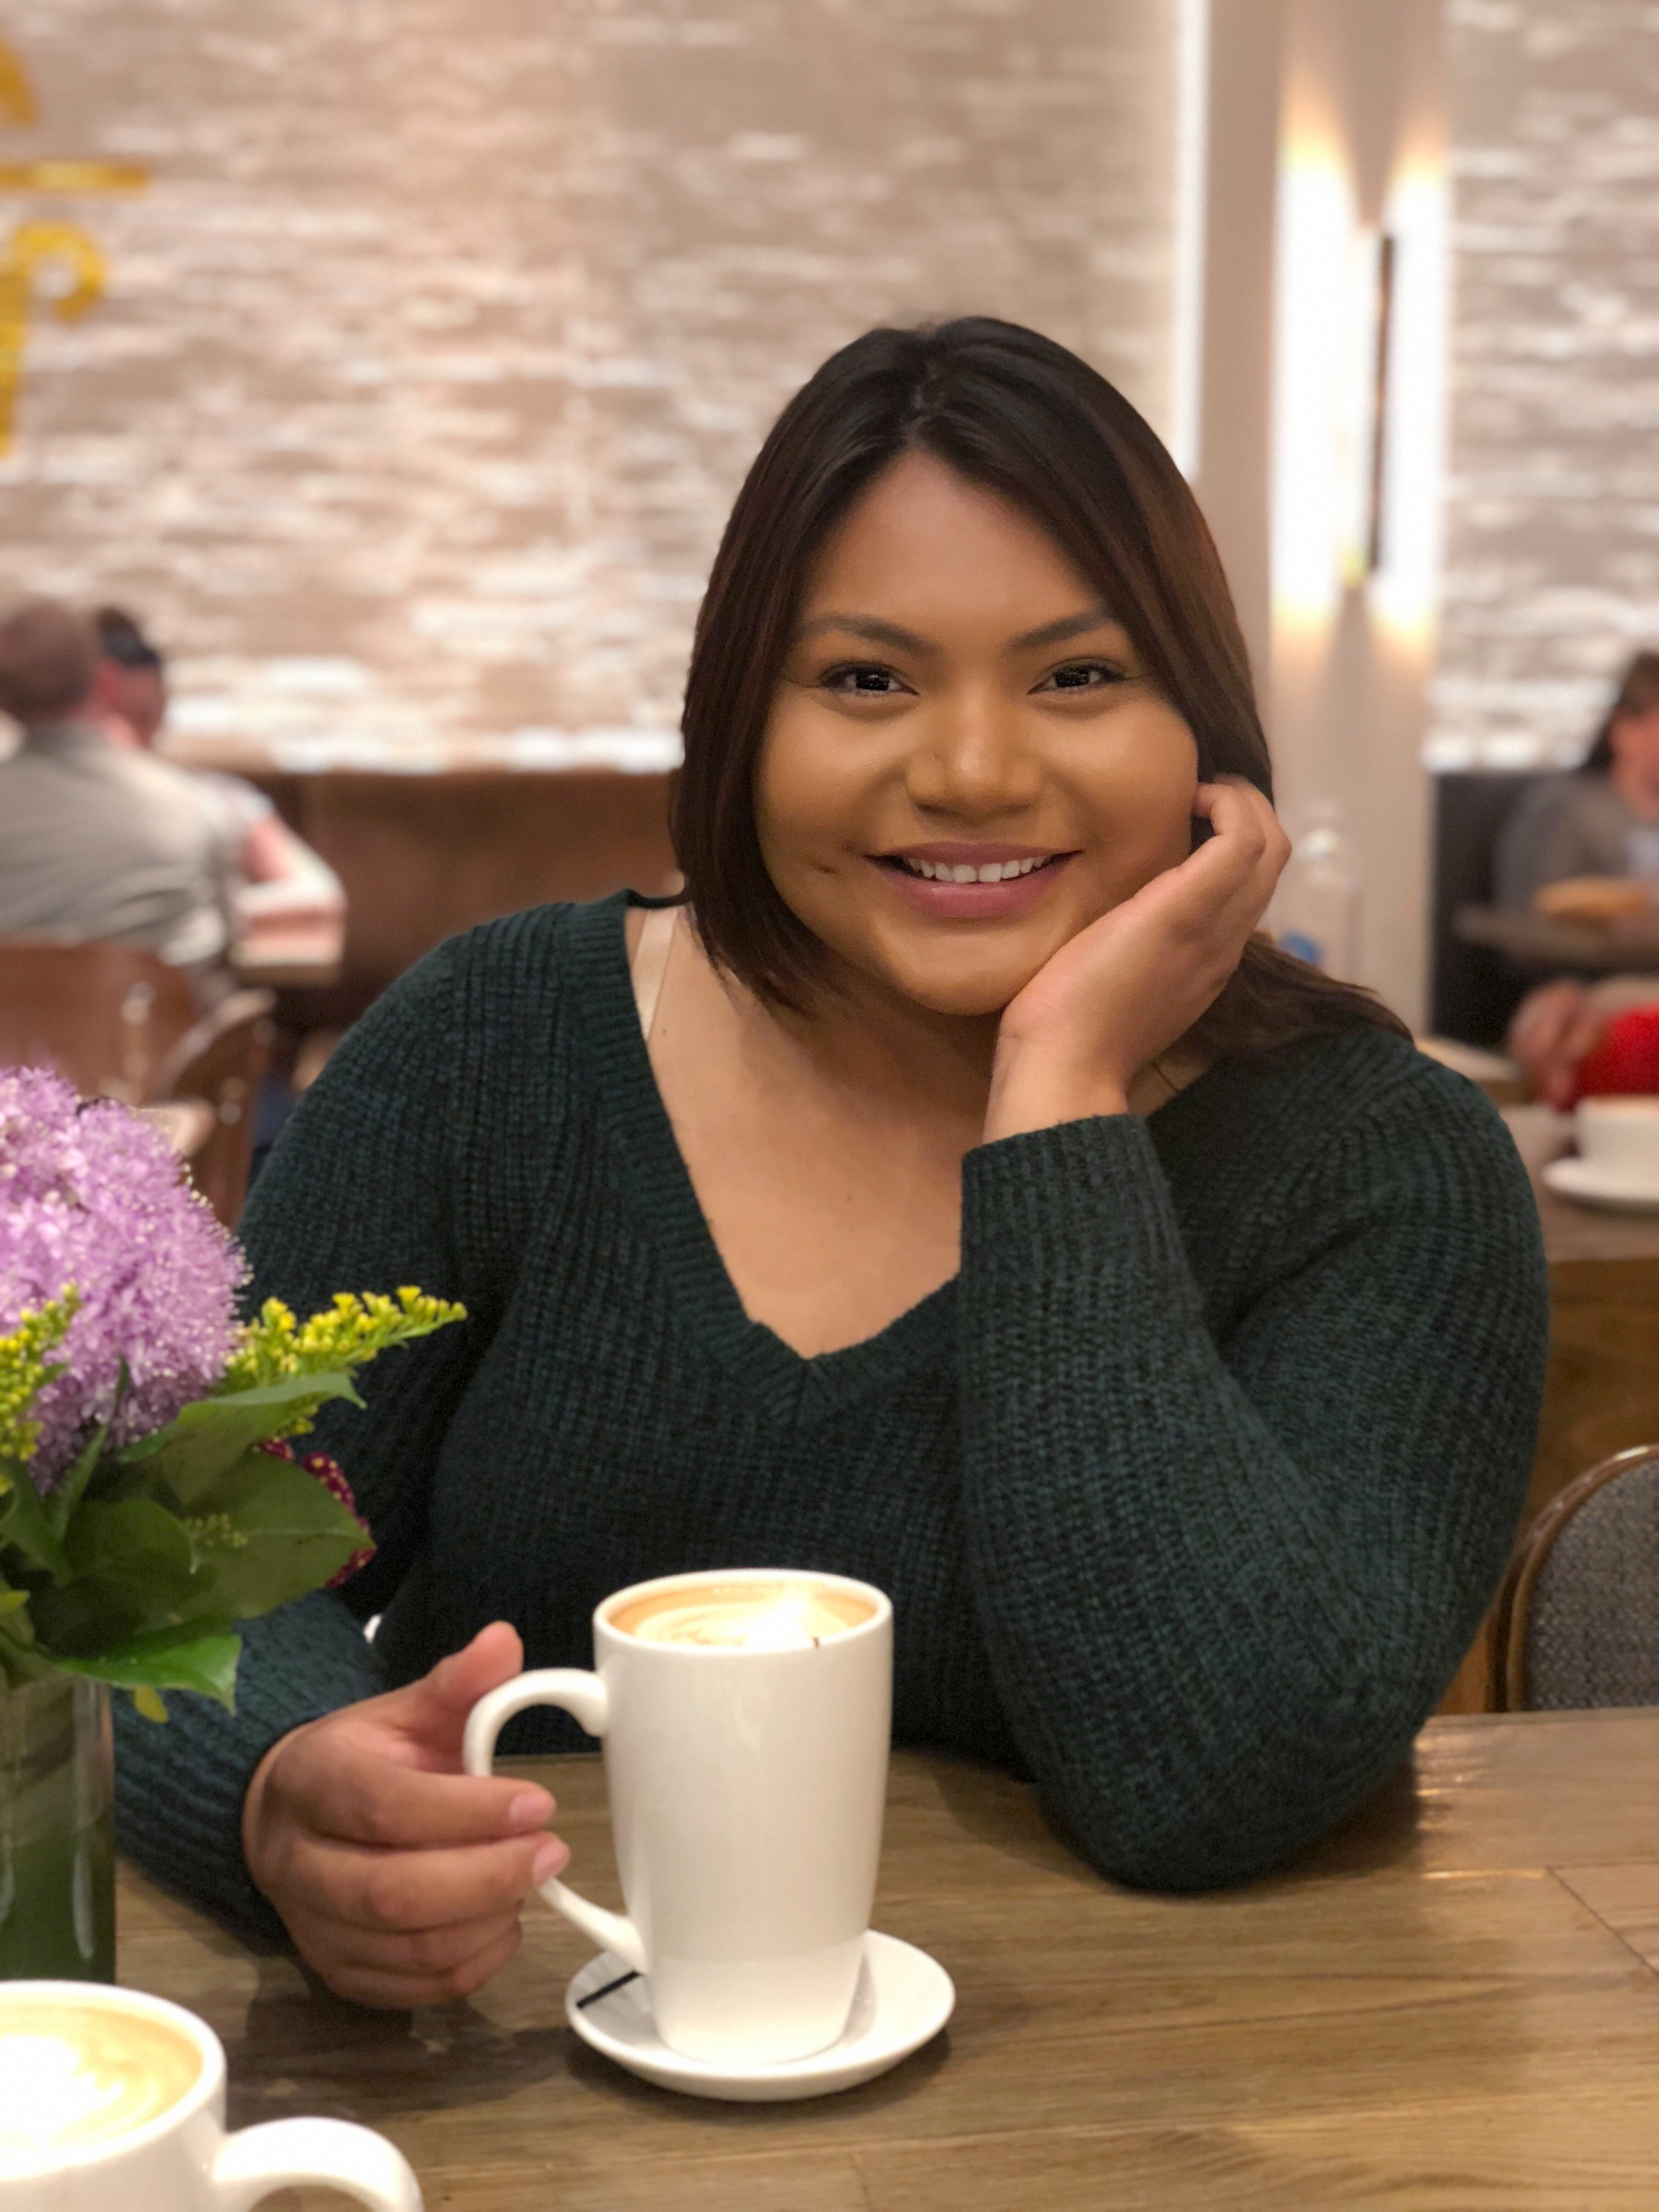 Cecelia Hernandez smiles into the camera while holding a cup of coffee.